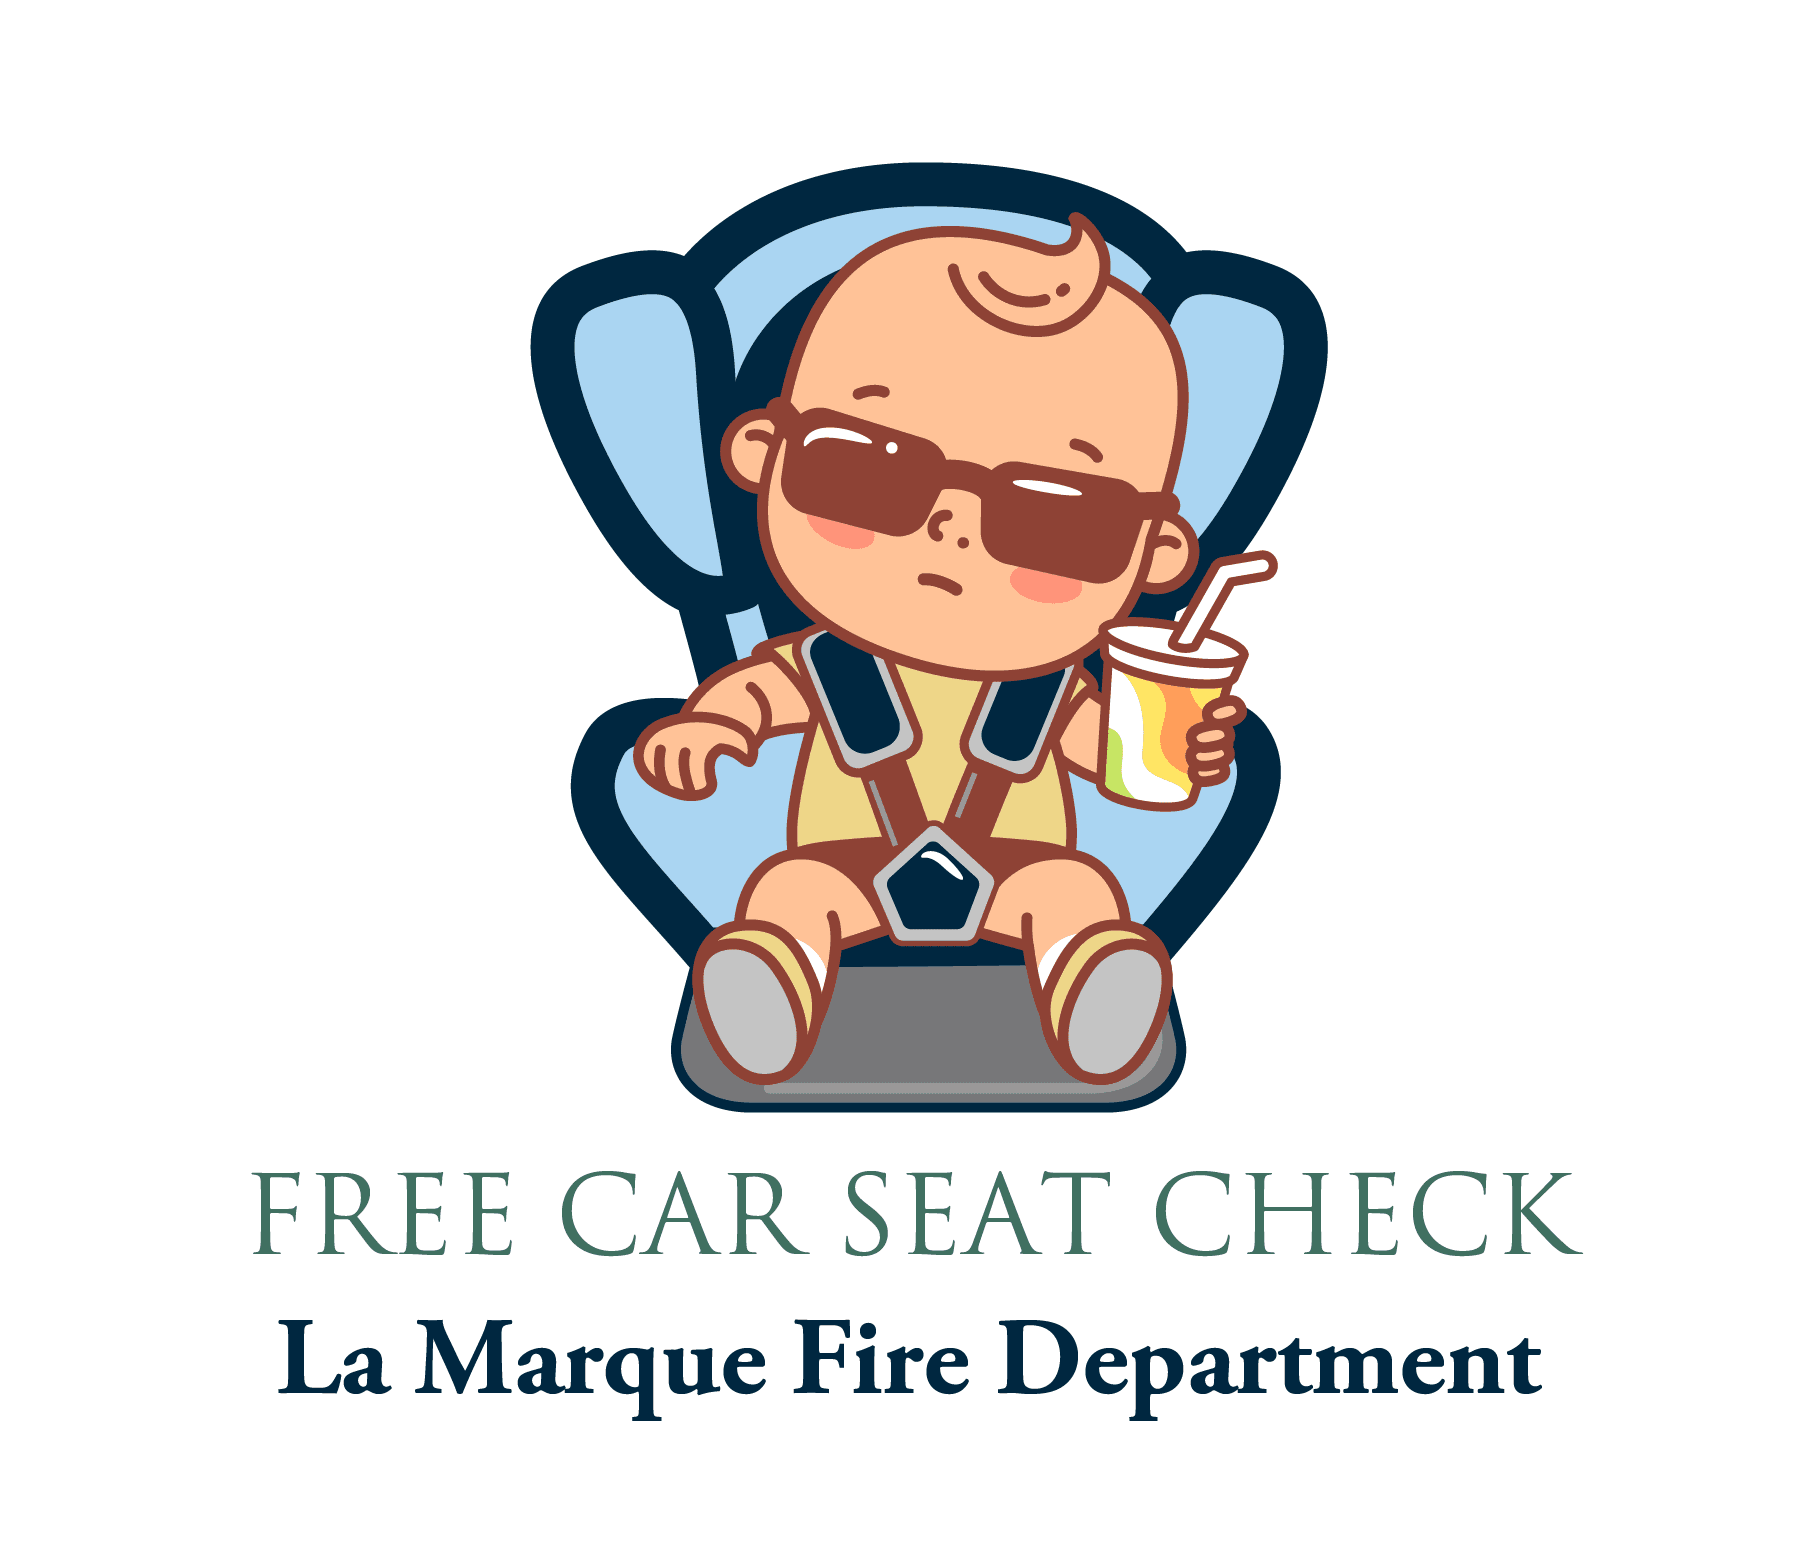 LMFD_free car seat check graphic with kid in car seat holding a drink